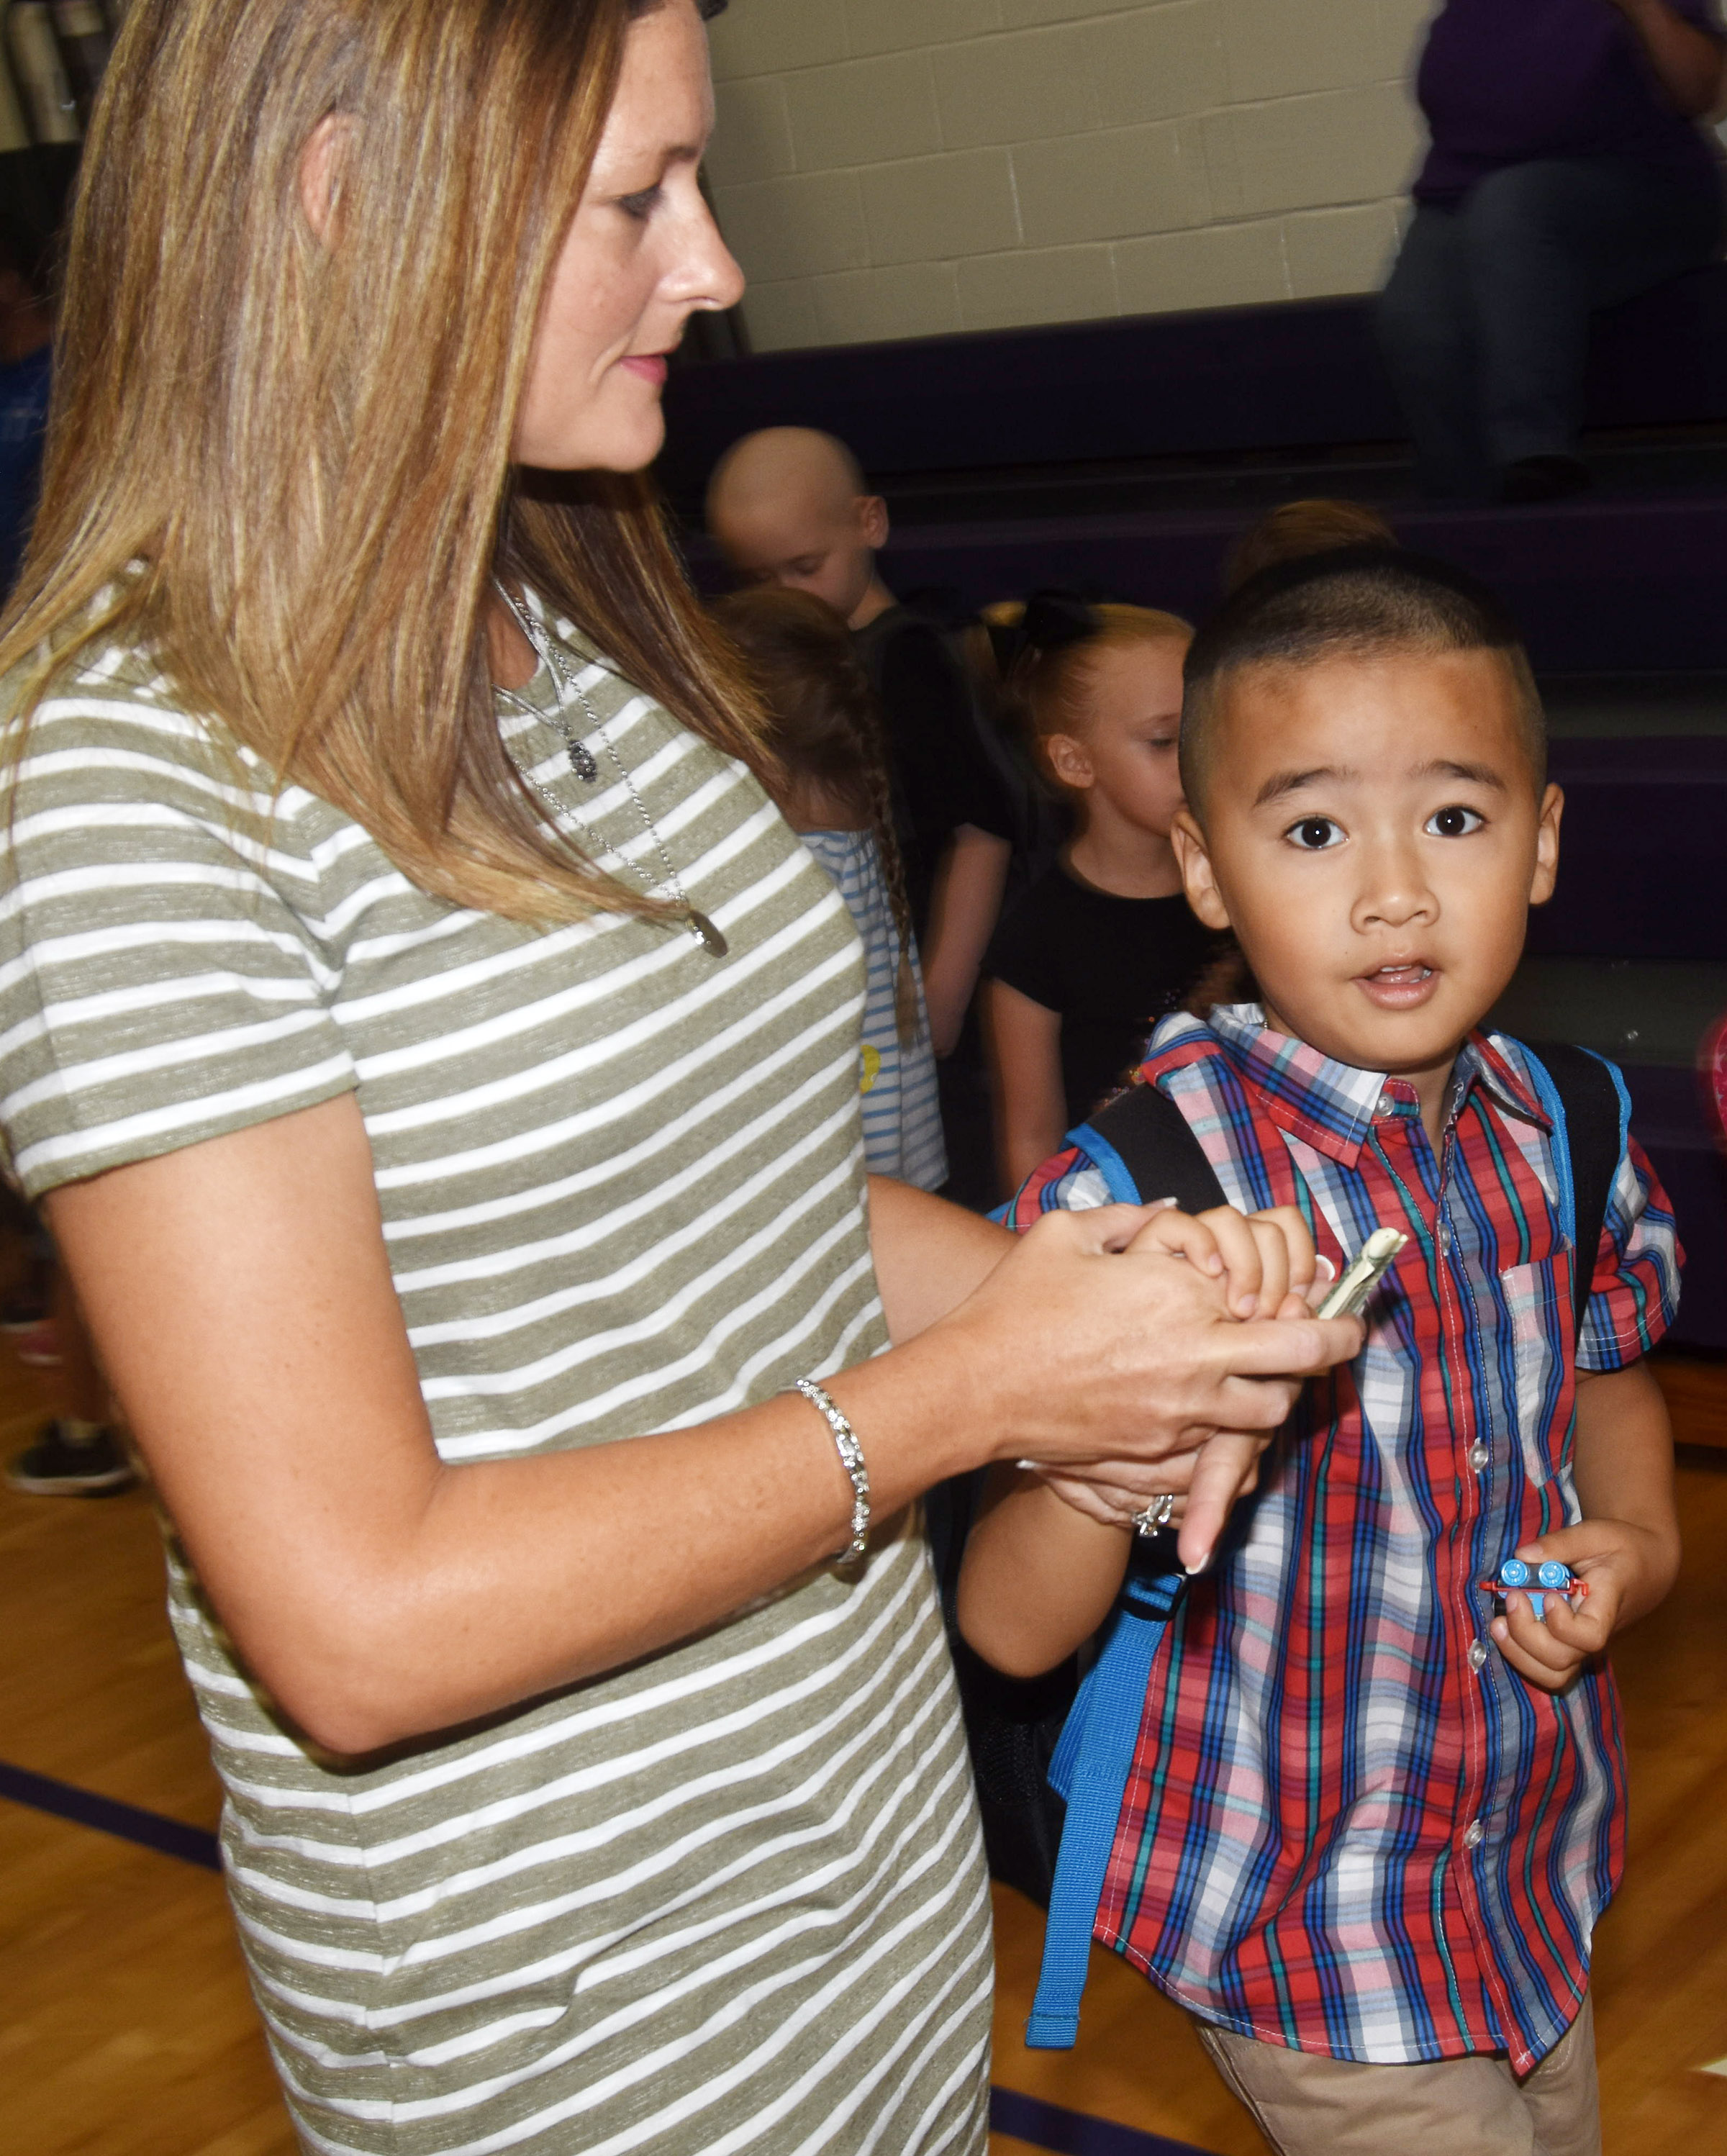 Campbellsville Elementary School kindergartener Minh Turdo walks to his classroom with instructional assistant Tracey Paiz.